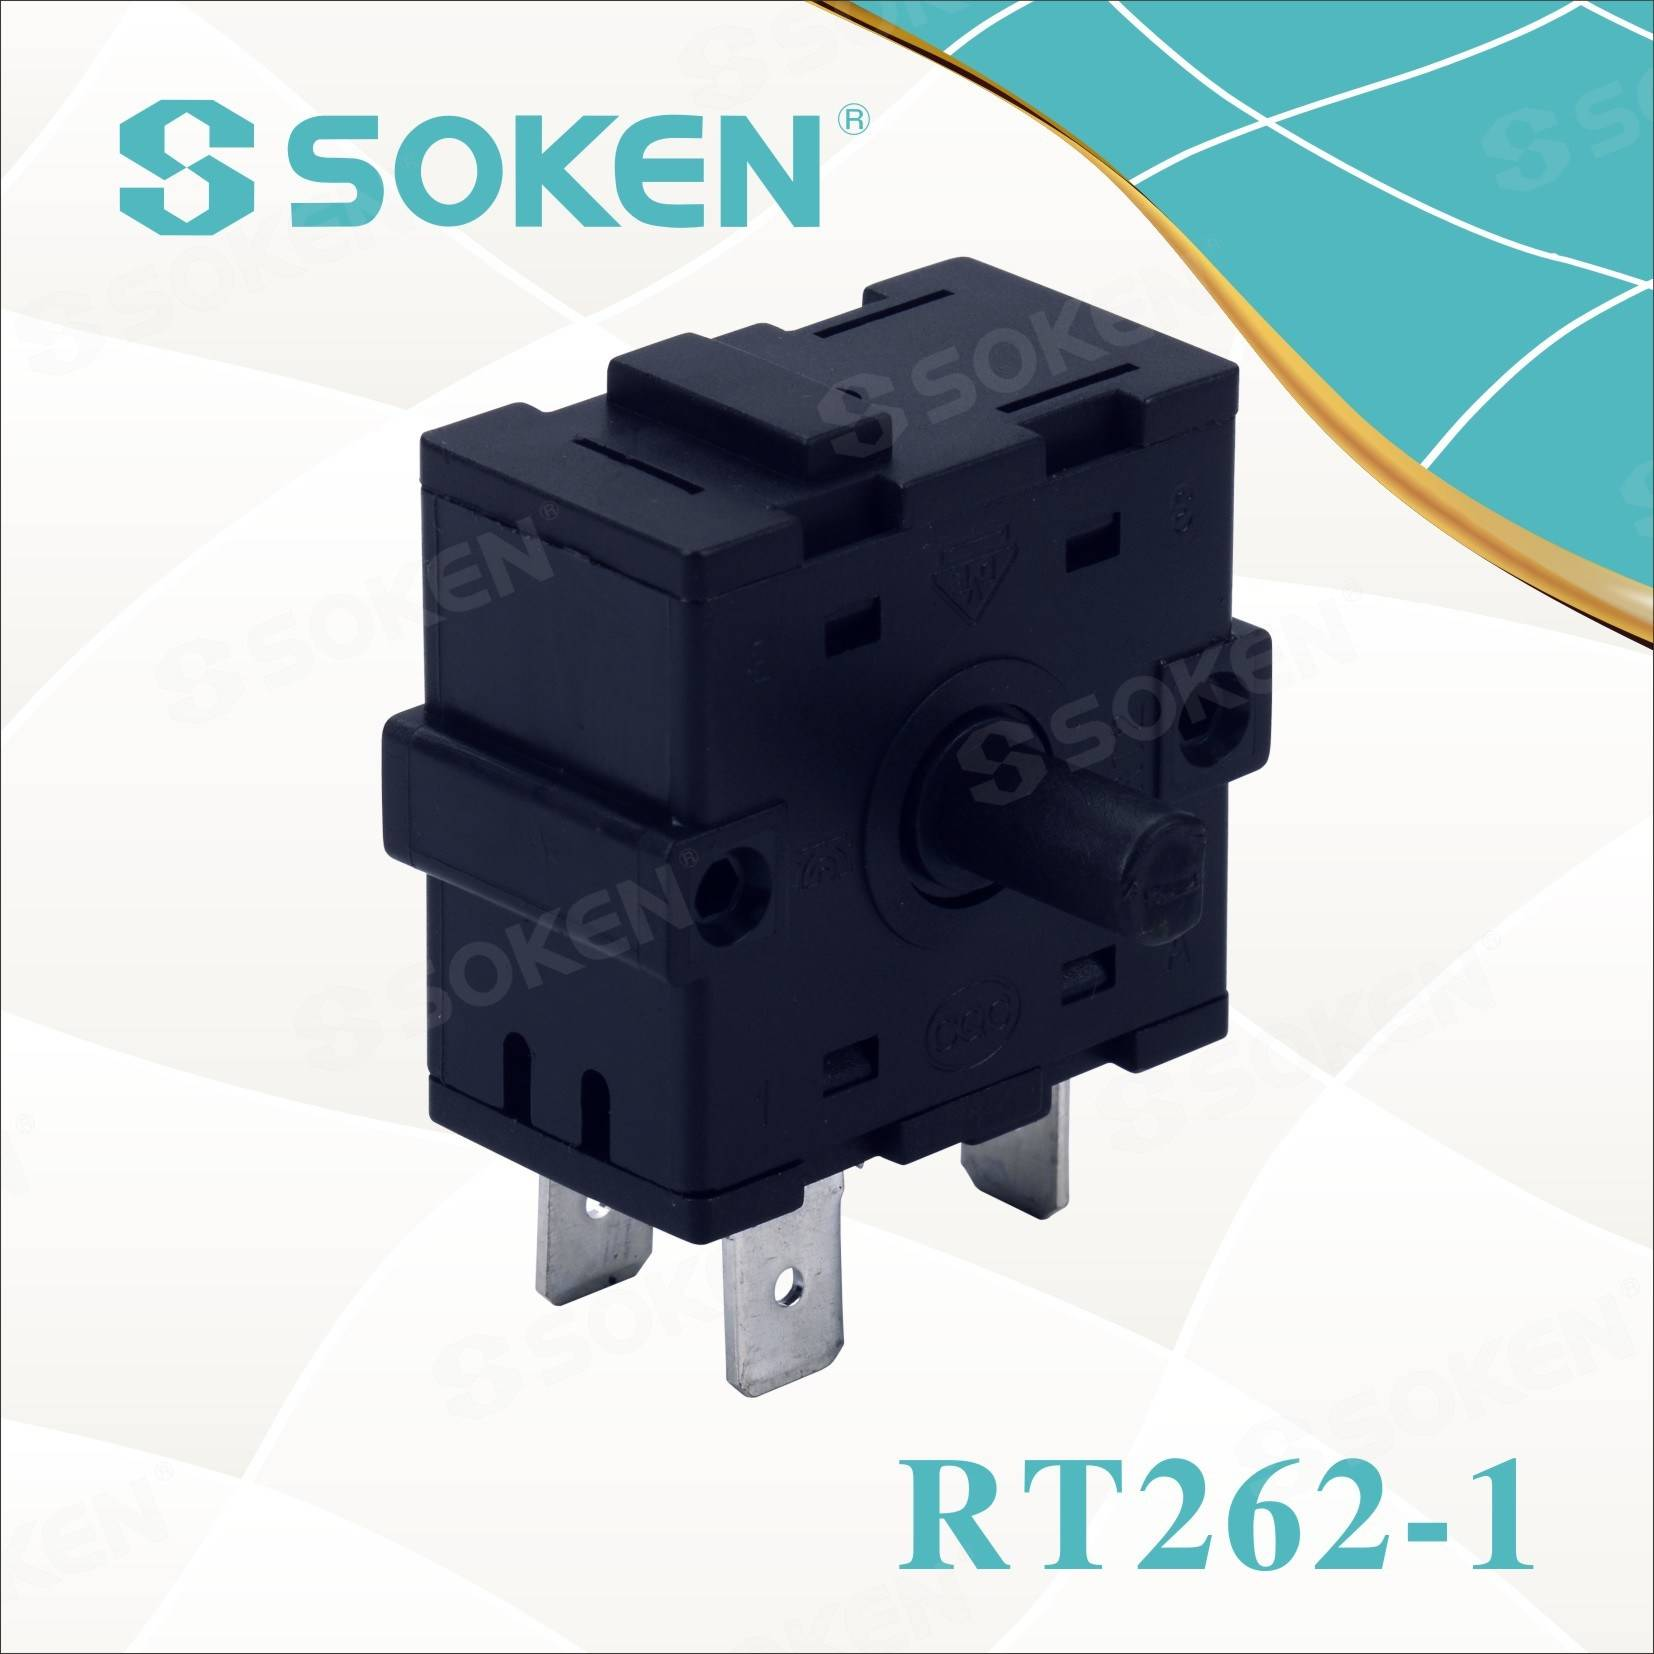 China Gold Supplier for Insert Key For Power Switch -